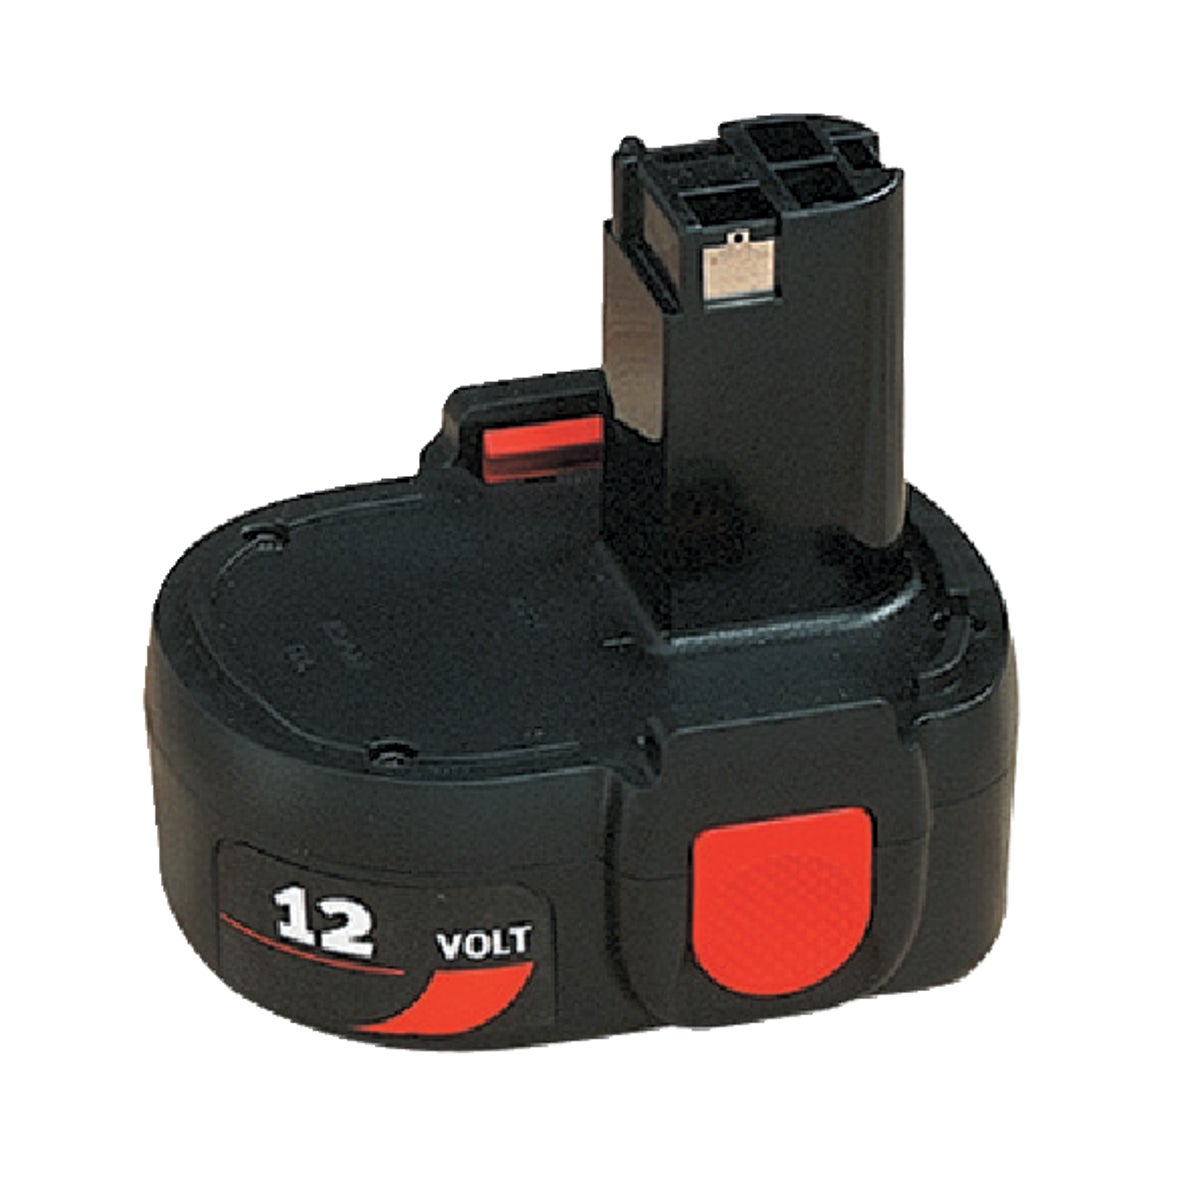 12V BATTERY PACK - 120BAT by Robt Bosch Tool Skil